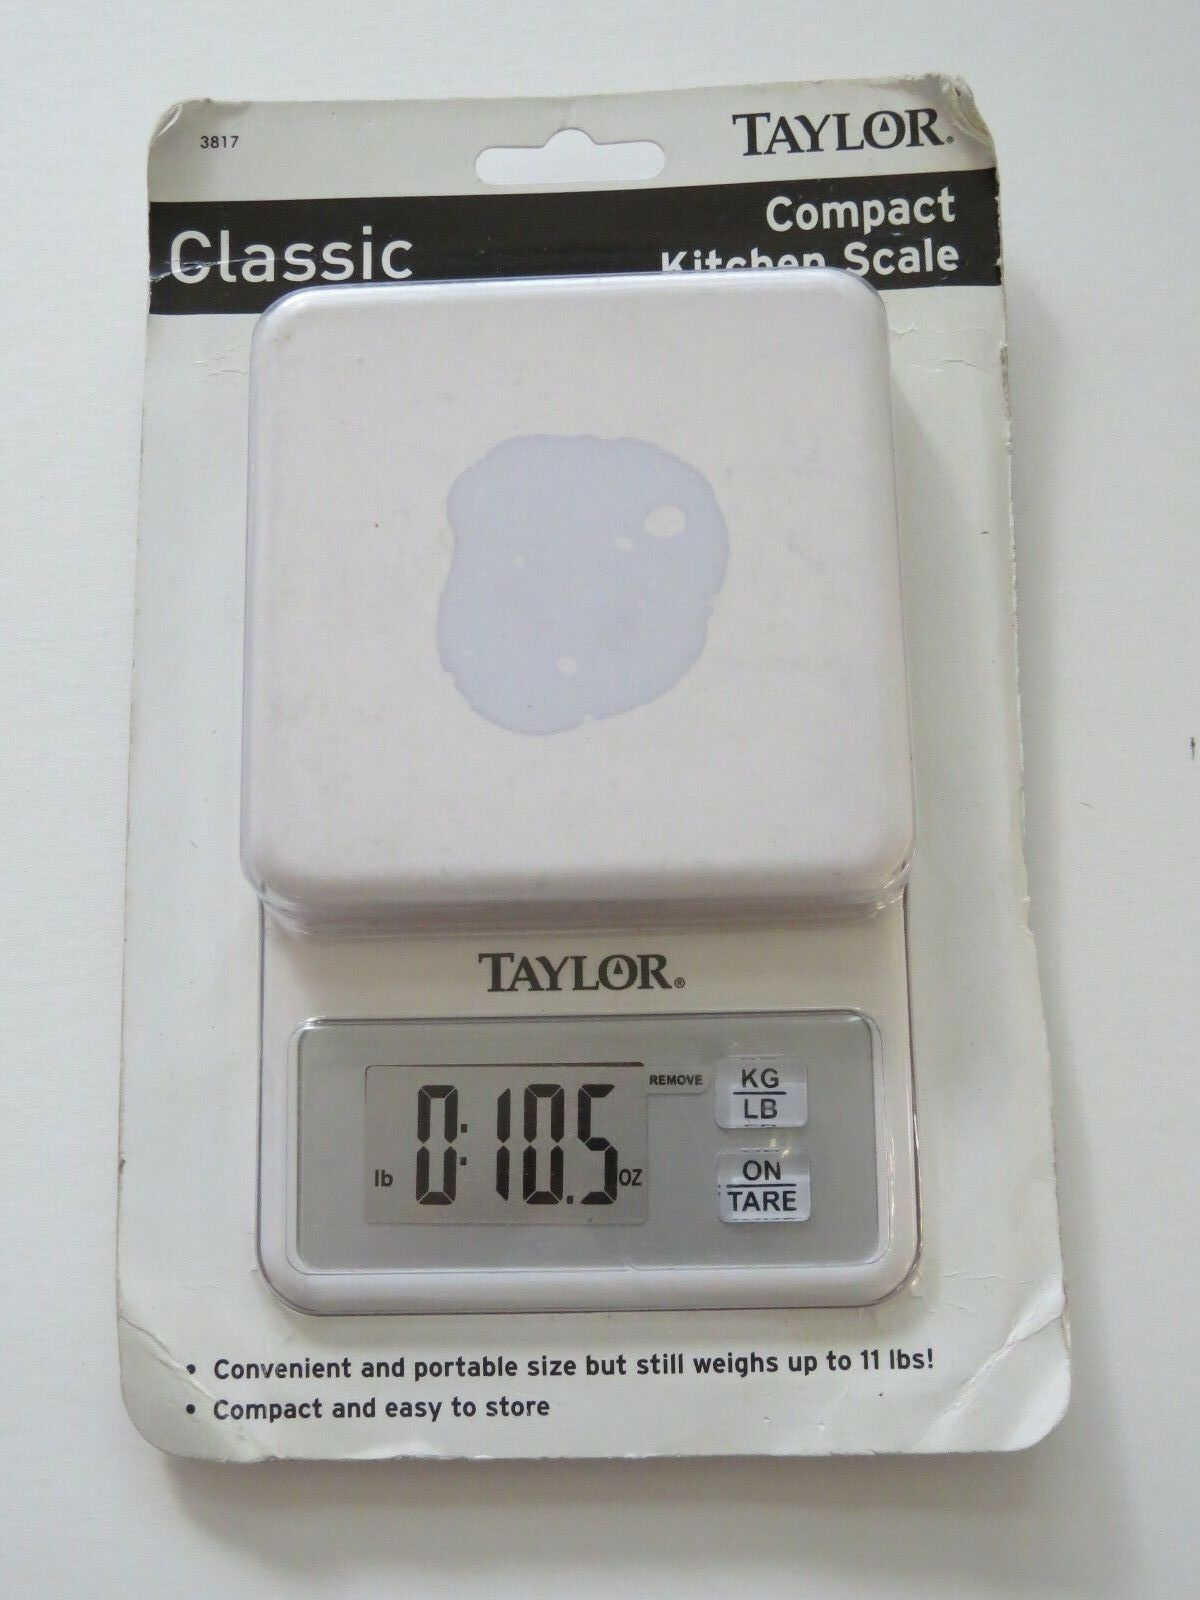 Taylor Precision 3817 Digital Kitchen Scale 11lb Portable Compact | eBay